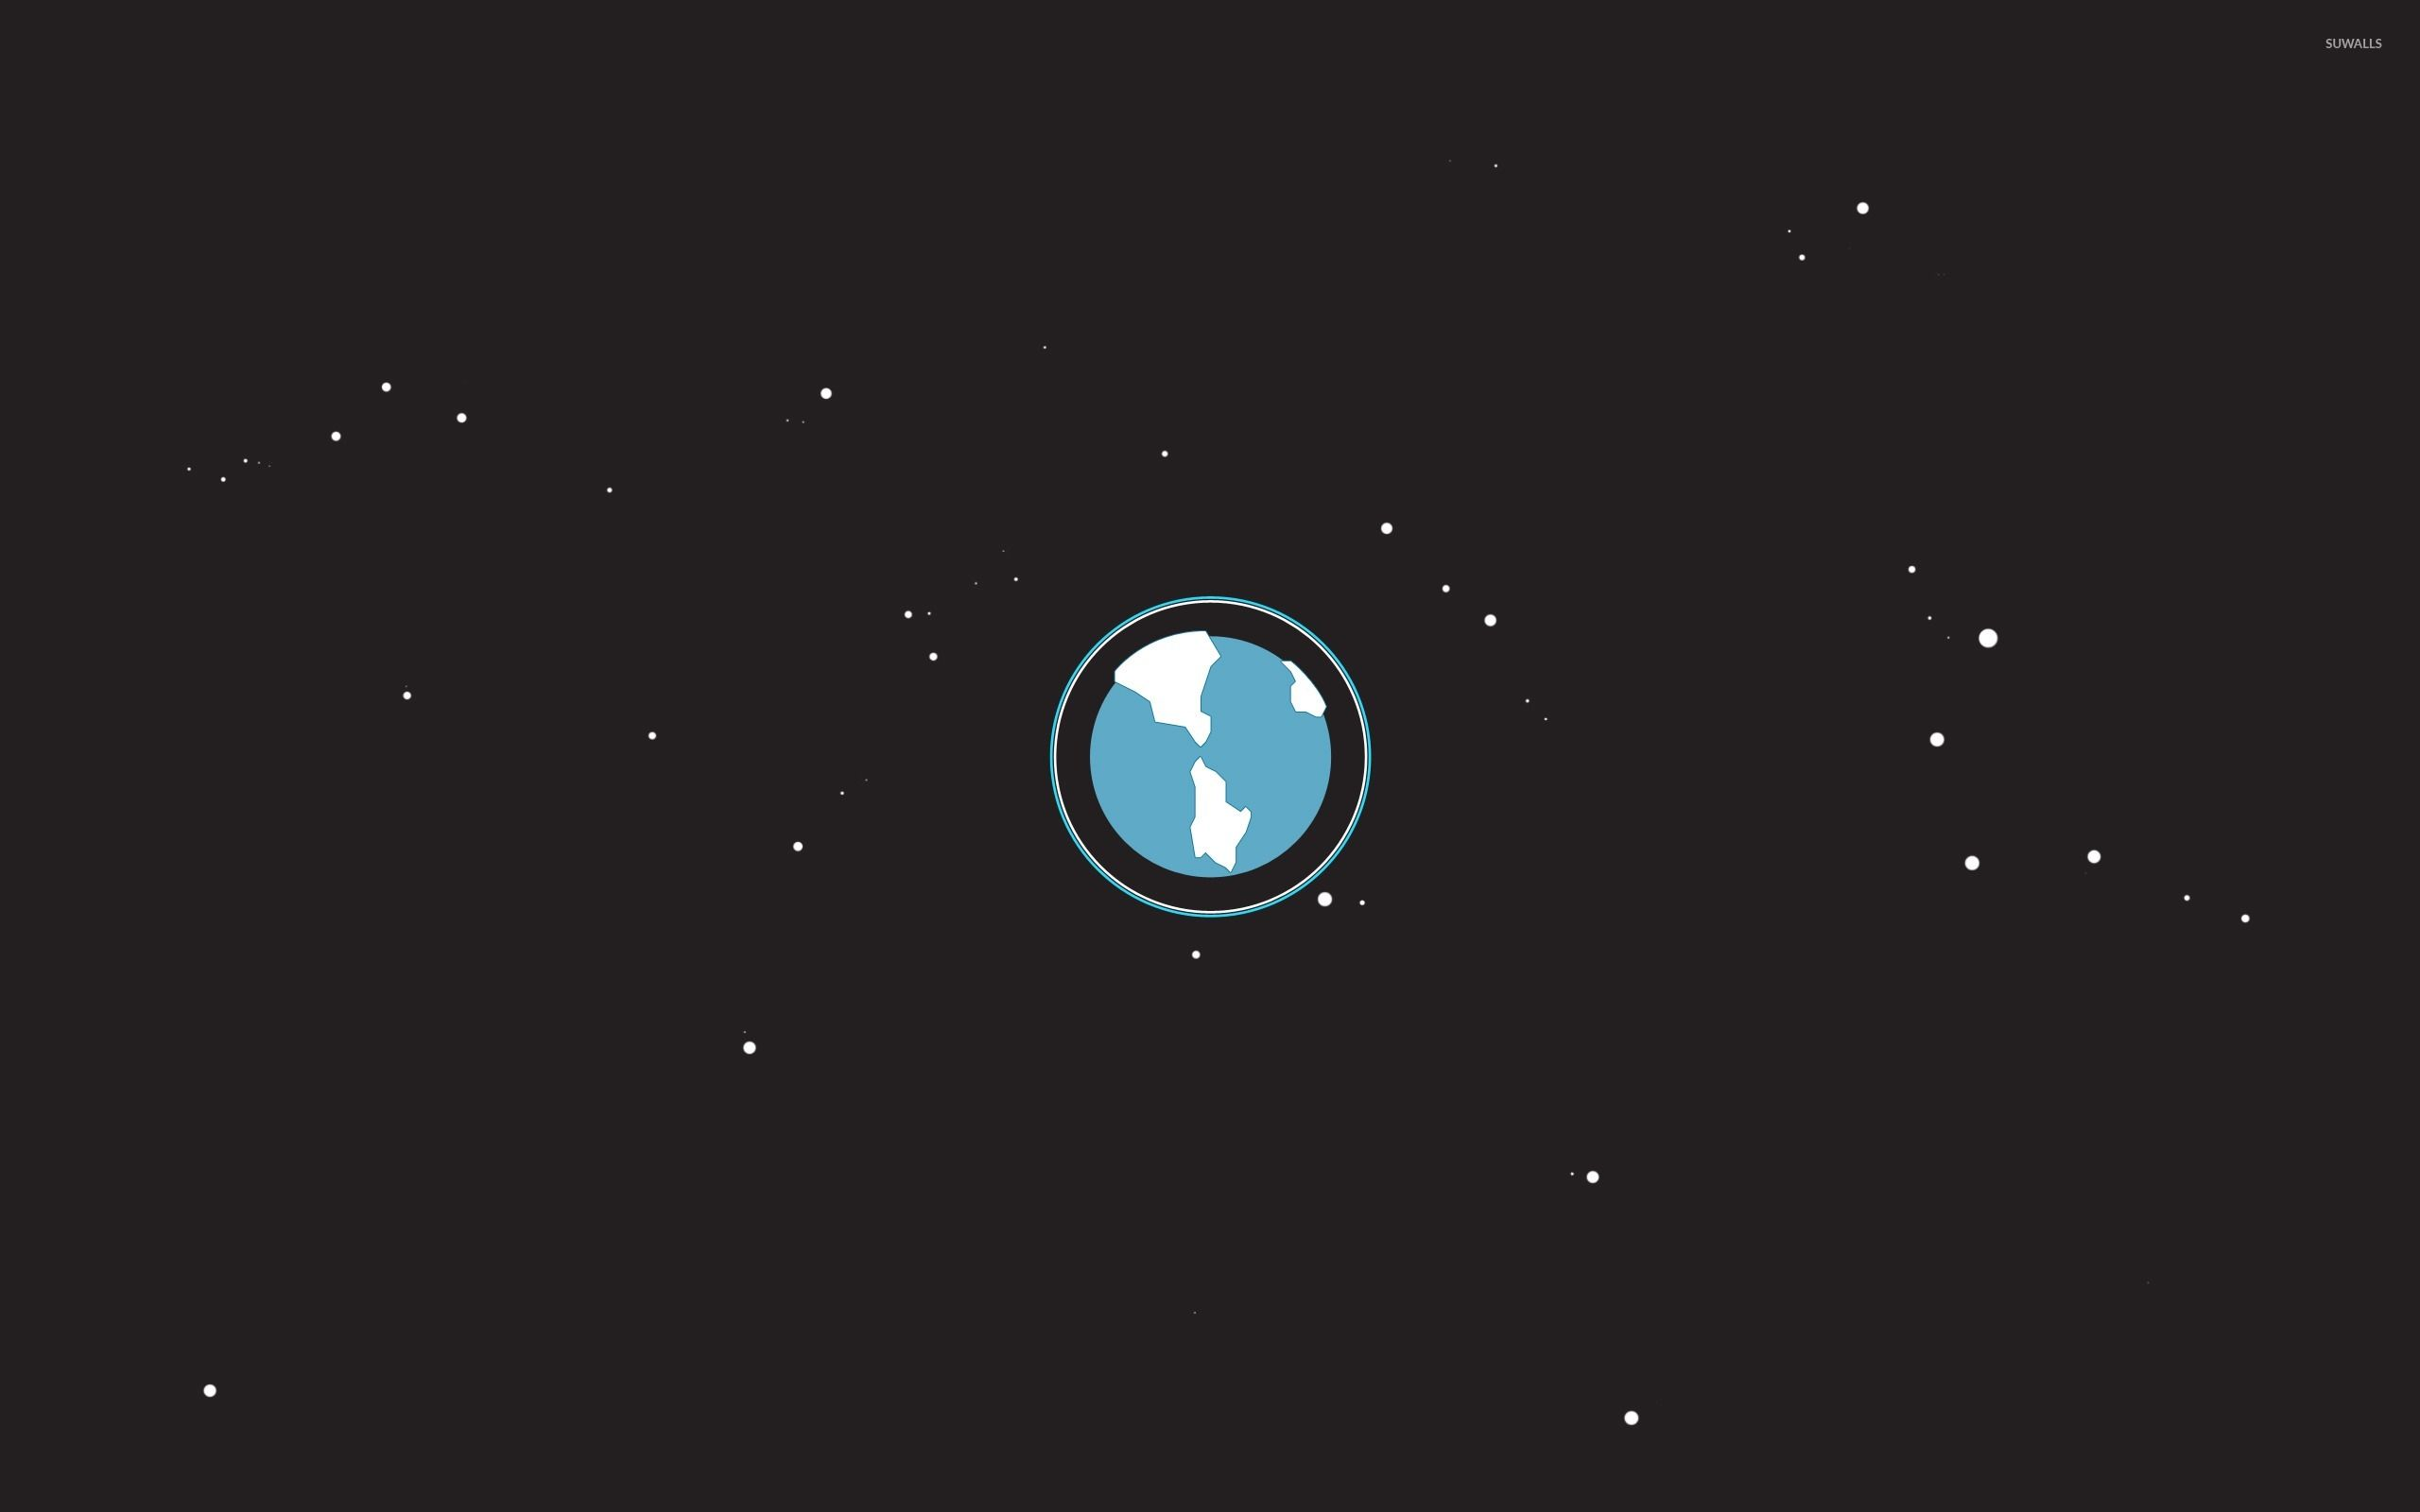 From Space Wallpaper Backgrounds Minimalist Desktop Wallpaper Aesthetic Desktop Wallpaper Desktop Wallpaper Simple